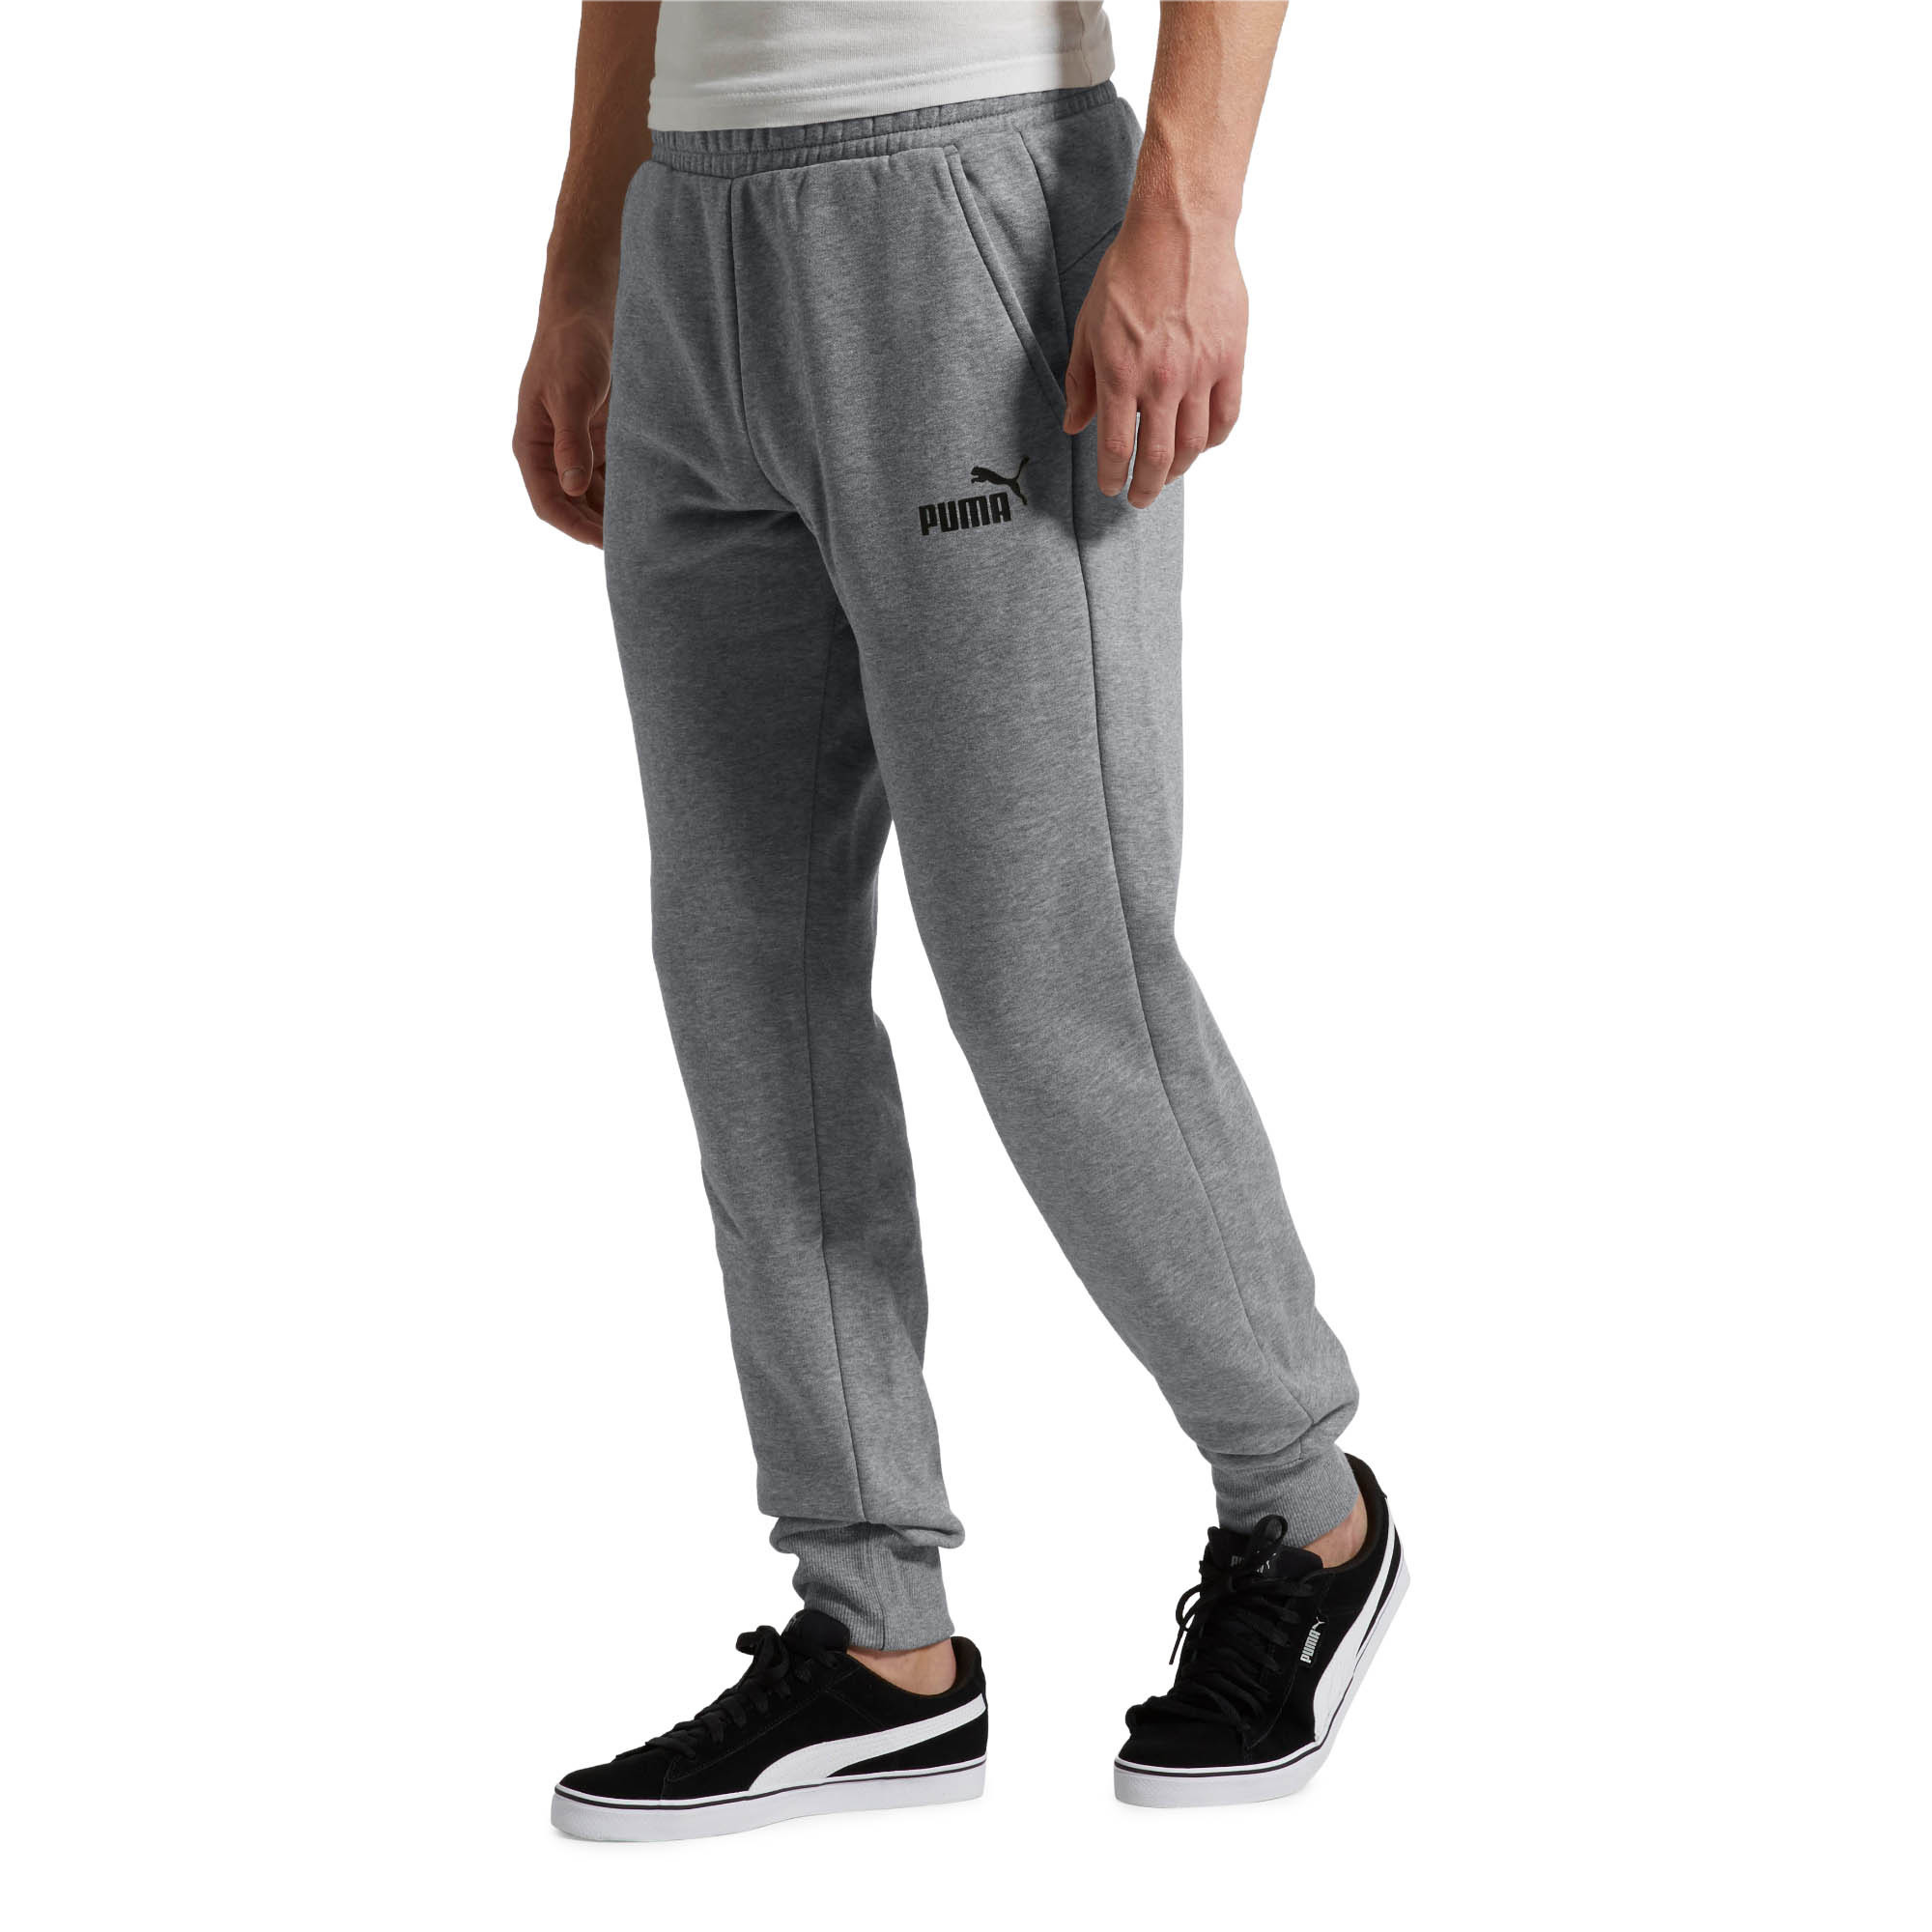 PUMA-Essentials-Men-039-s-Fleece-Knit-Pants-Men-Knitted-Pants-Basics thumbnail 10